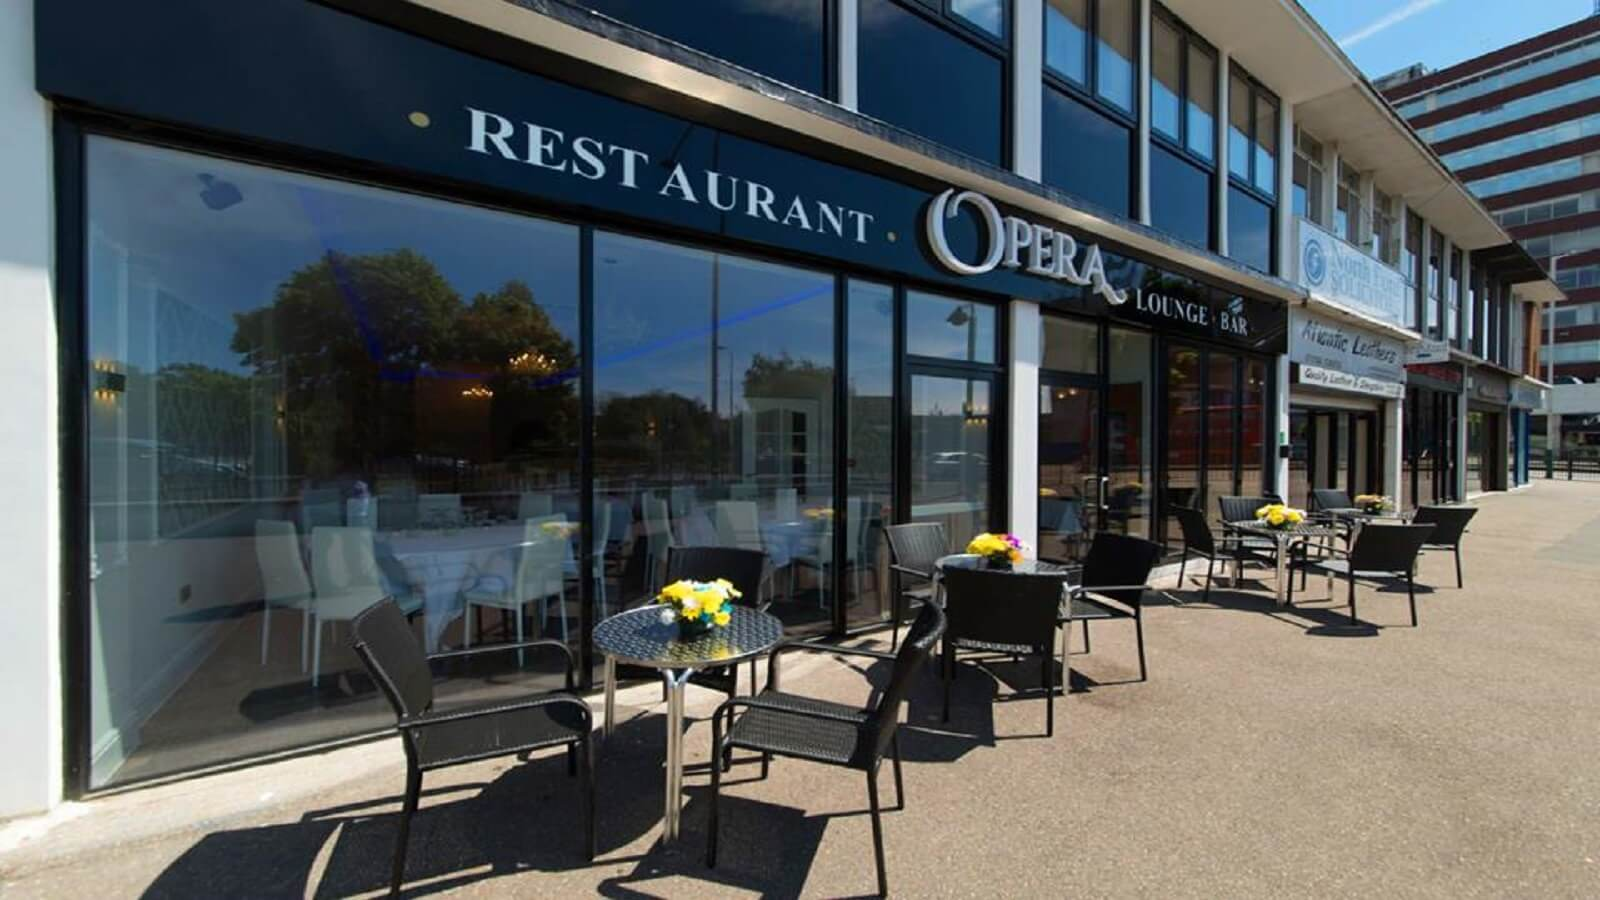 Opera Restaurant Bar & Lounge